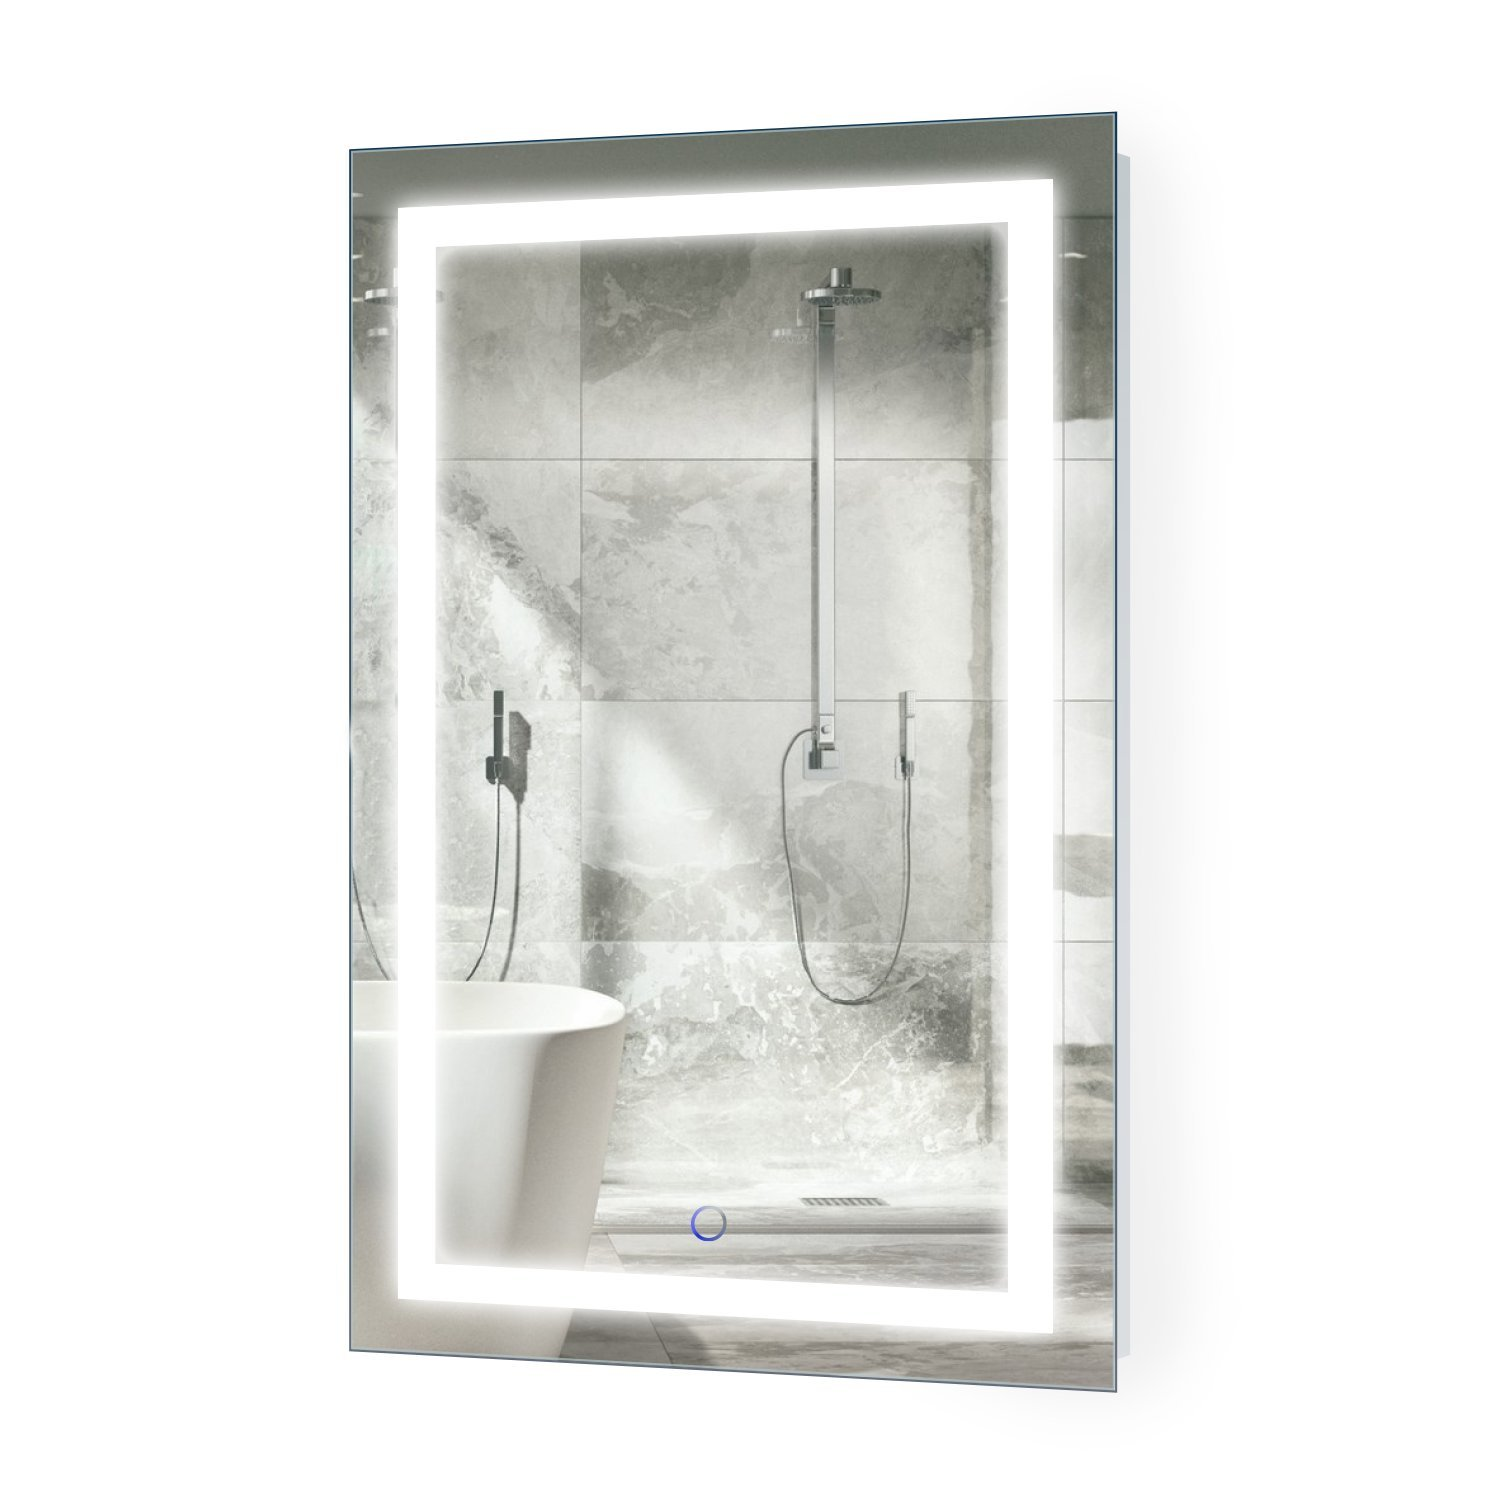 LED Bathroom Mirror 20 Inch X 32 Inch | Lighted Vanity Mirror Includes Dimmer and Defogger | Wall Mount Vertical or Horizontal Installation |